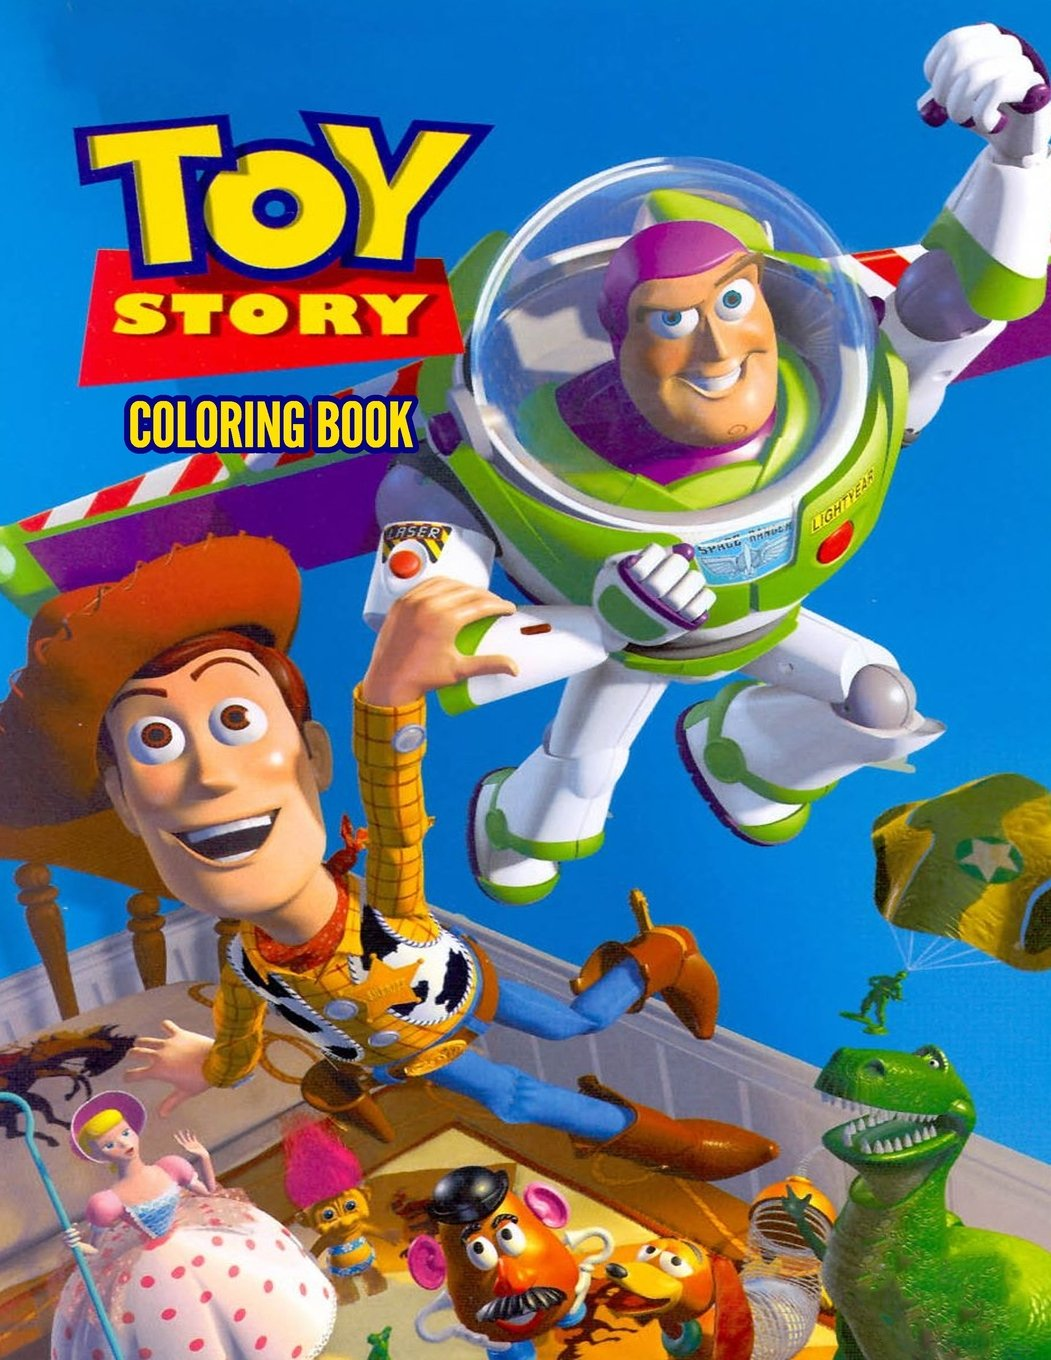 Download Toy Story Coloring Book: Coloring Book for Kids and Adults, This Amazing Coloring Book Will Make Your Kids Happier and Give Them Joy (Best ... Books for Adults and Kids 2-4 4-8 8-12+) pdf epub